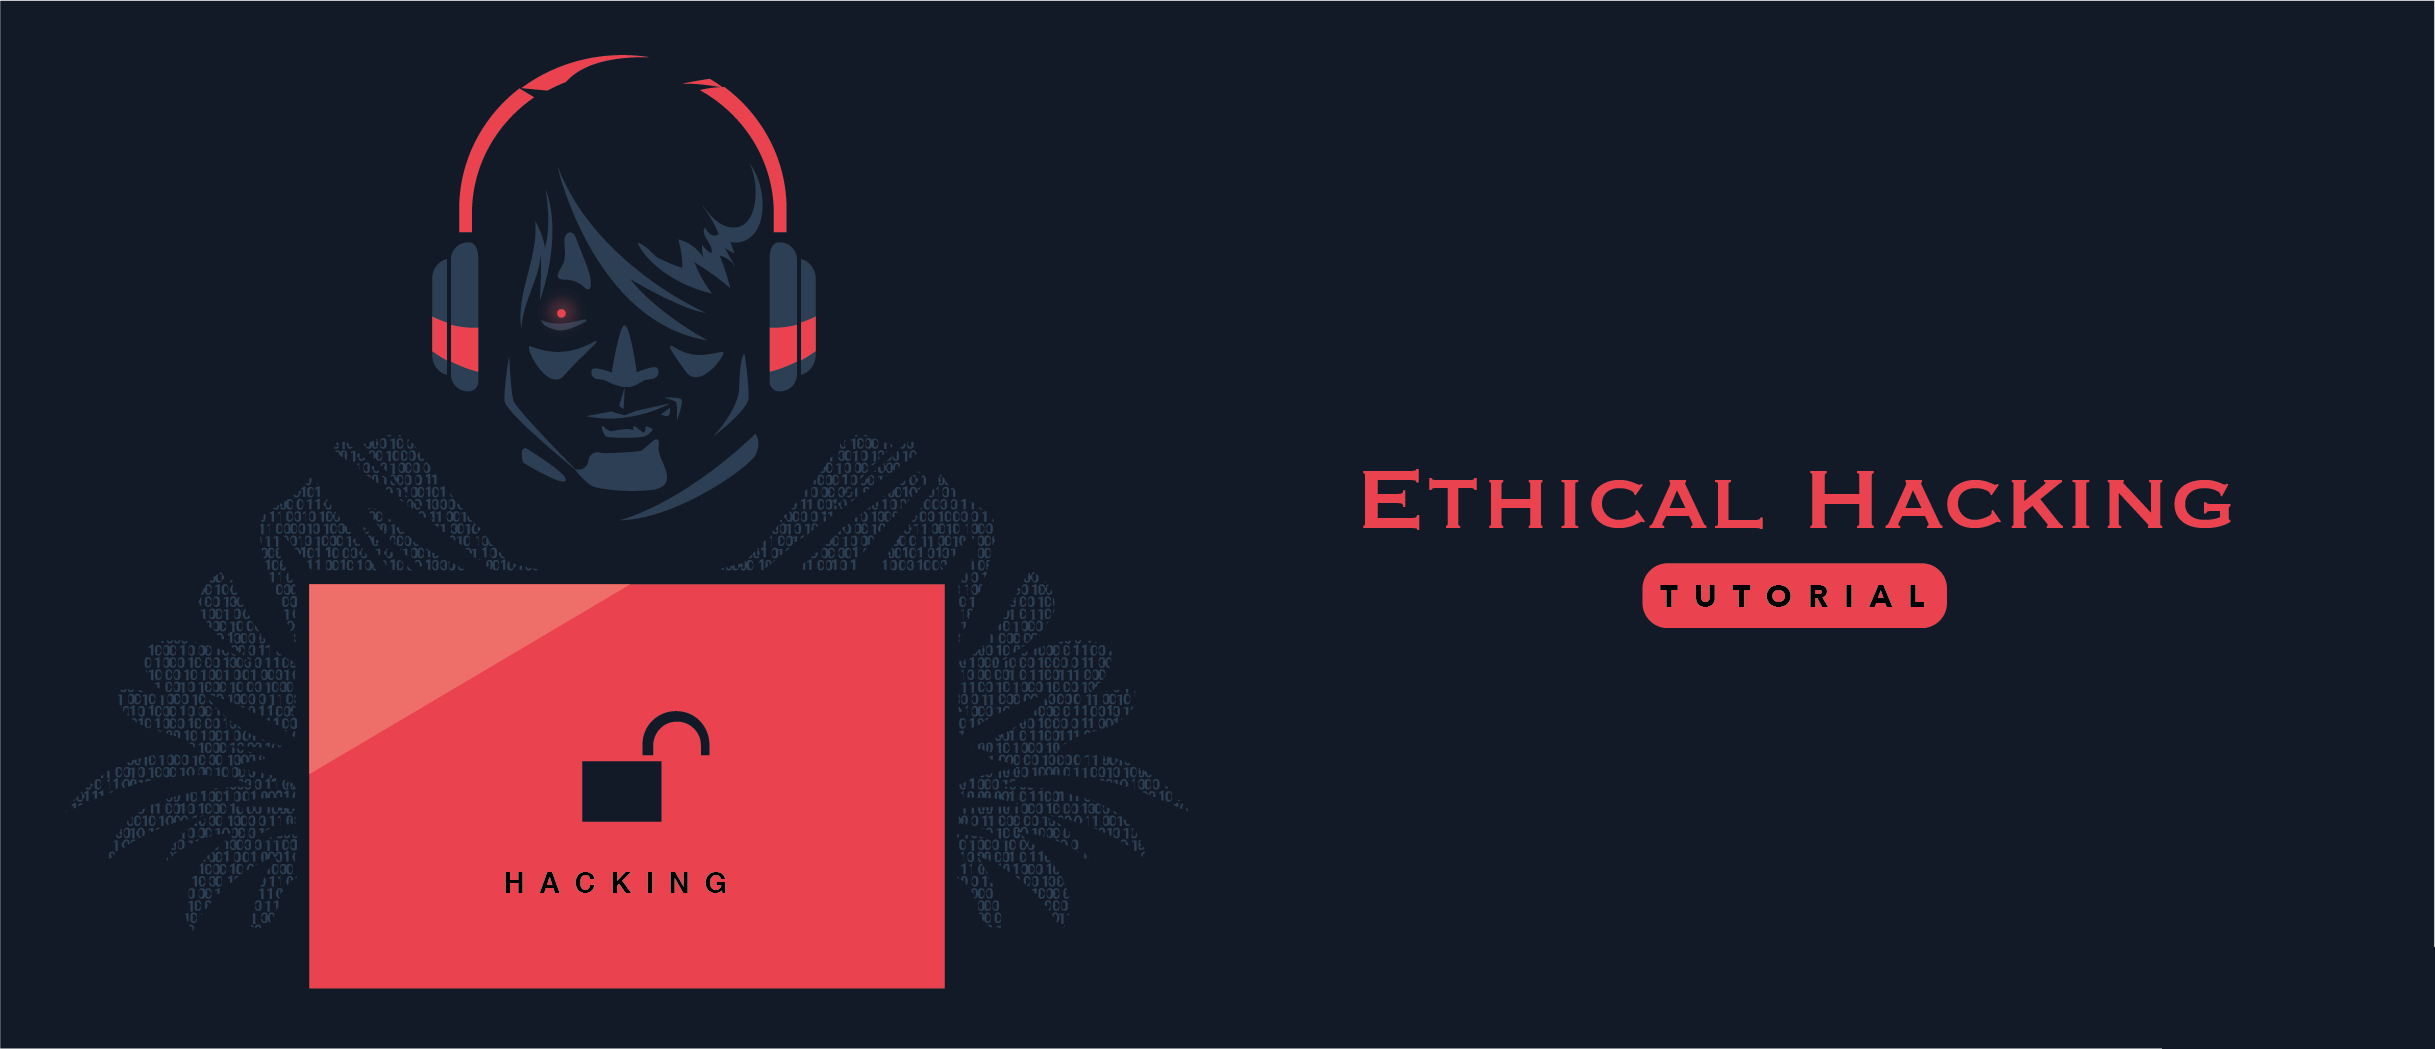 What is Ethical Hacking EC0-350 Certification Exam?